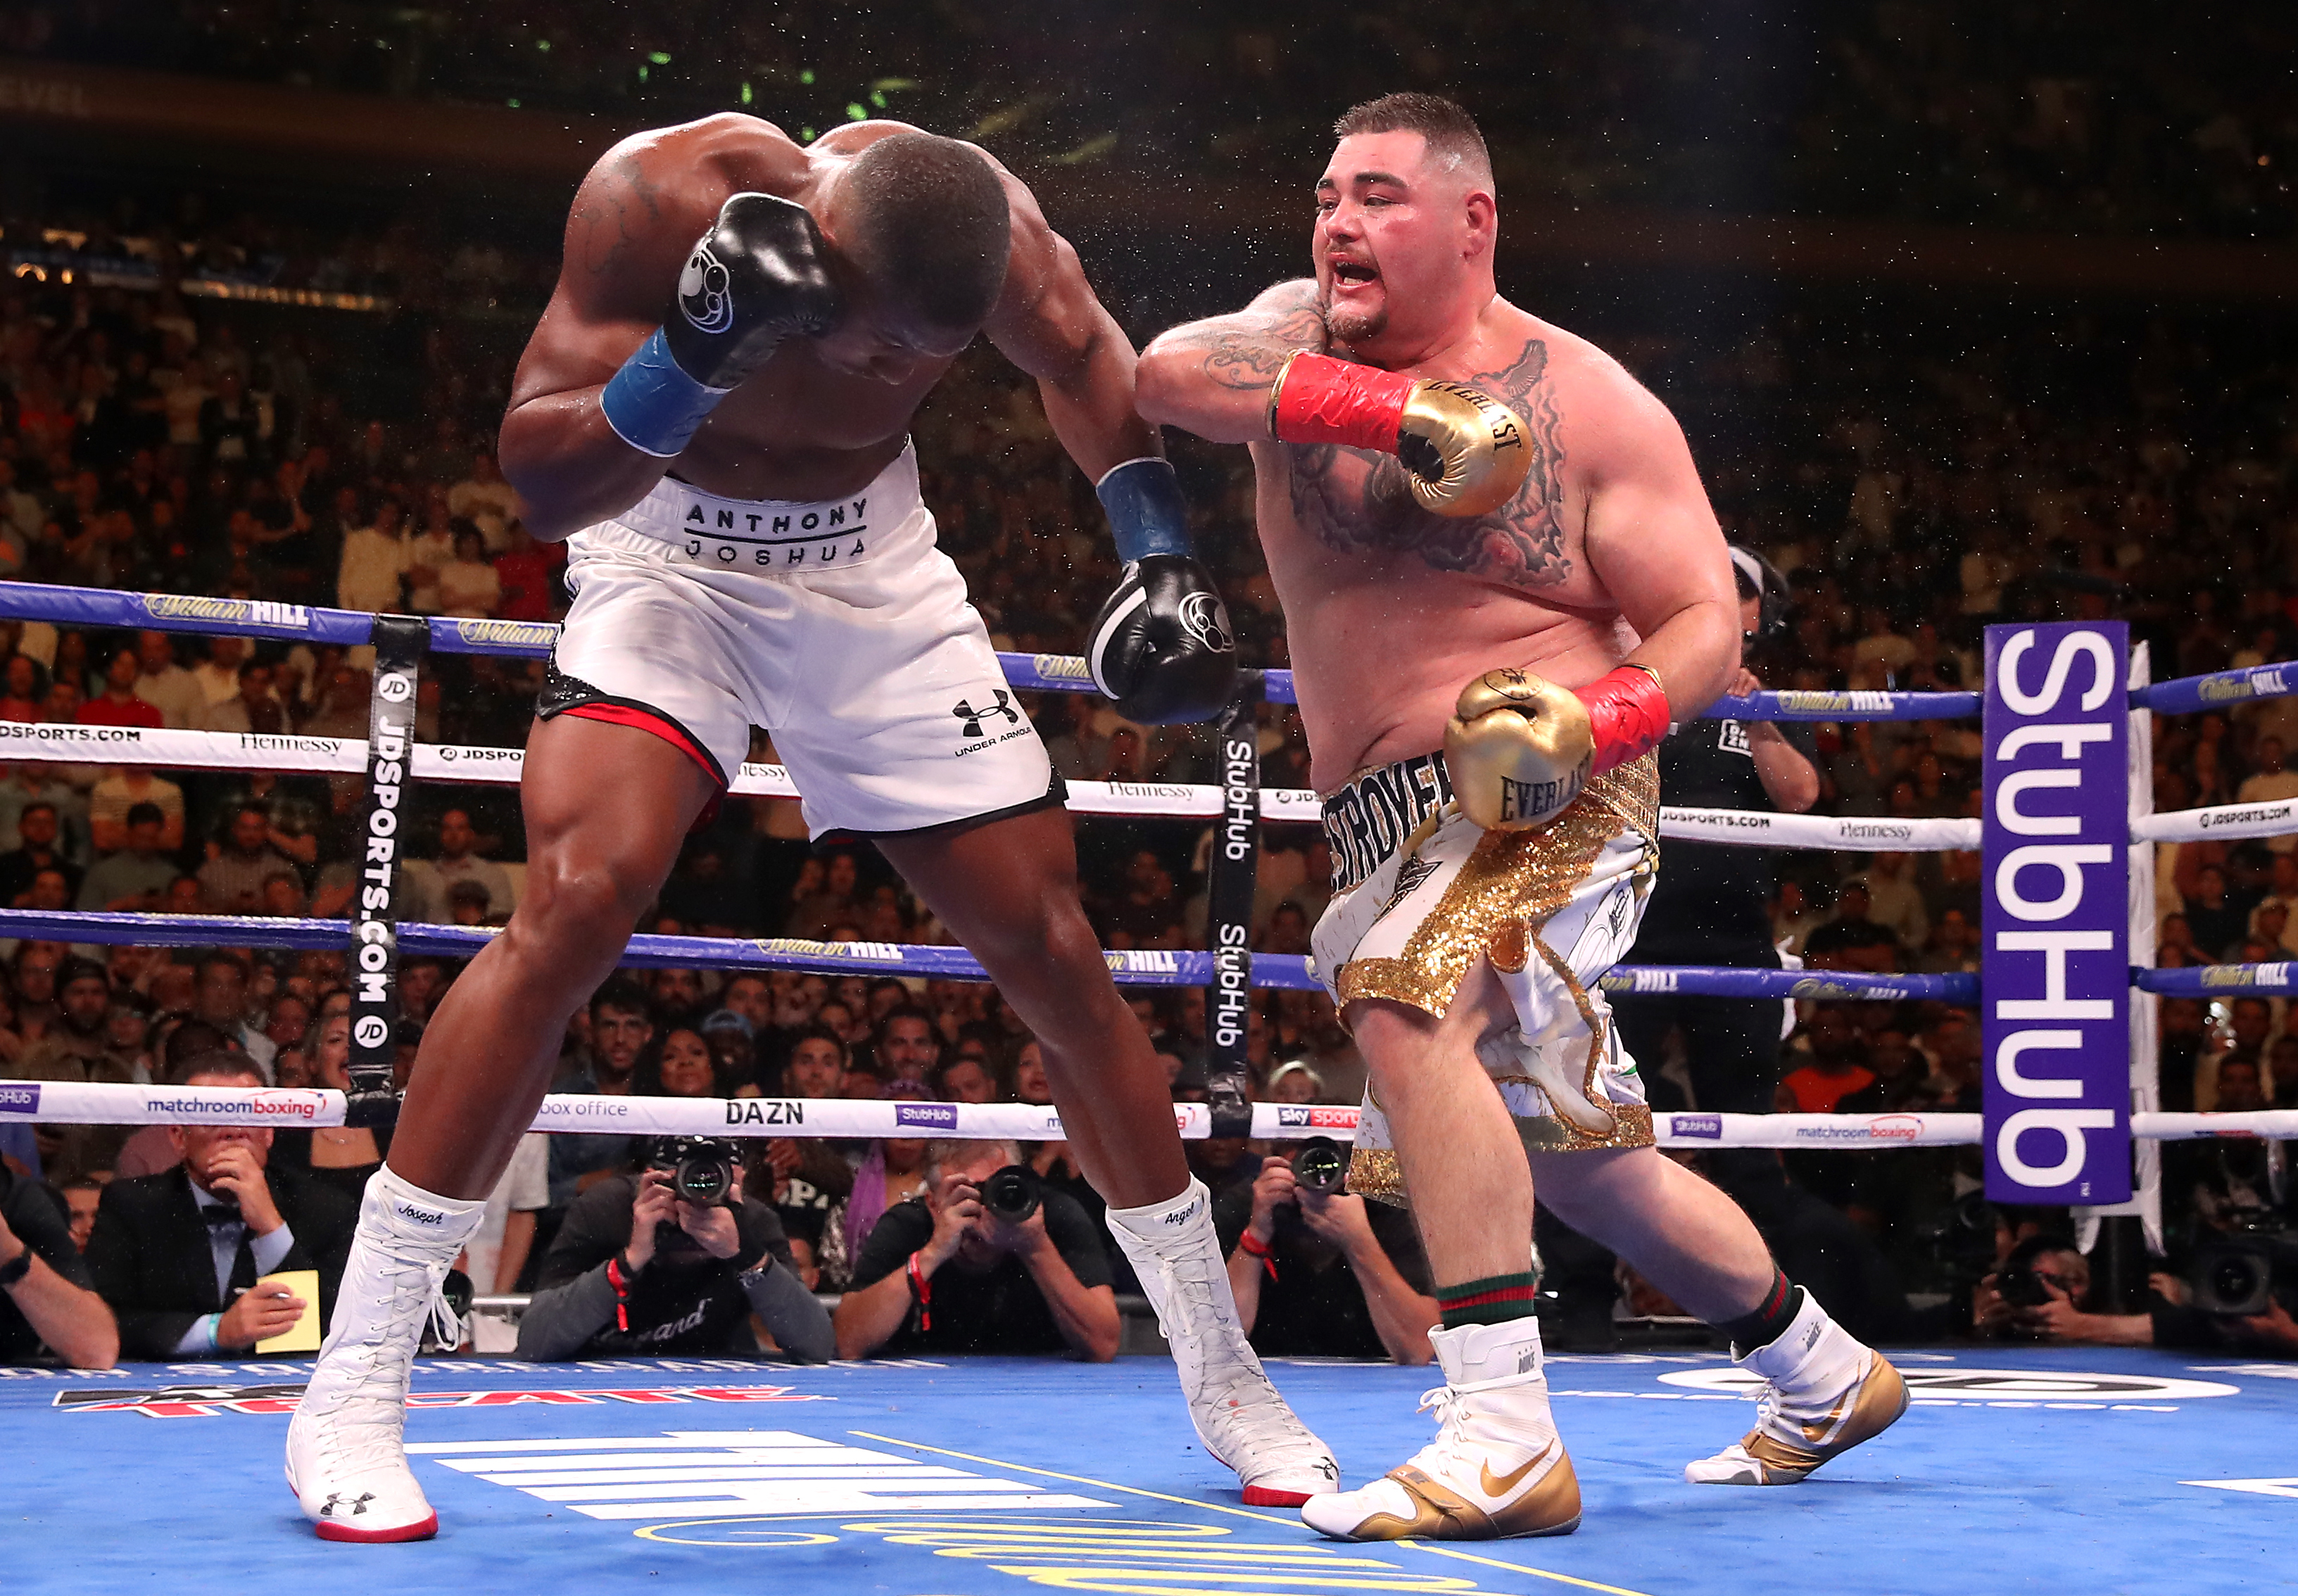 Possible venue for Anthony Joshua vs Andy Ruiz Jr rematch